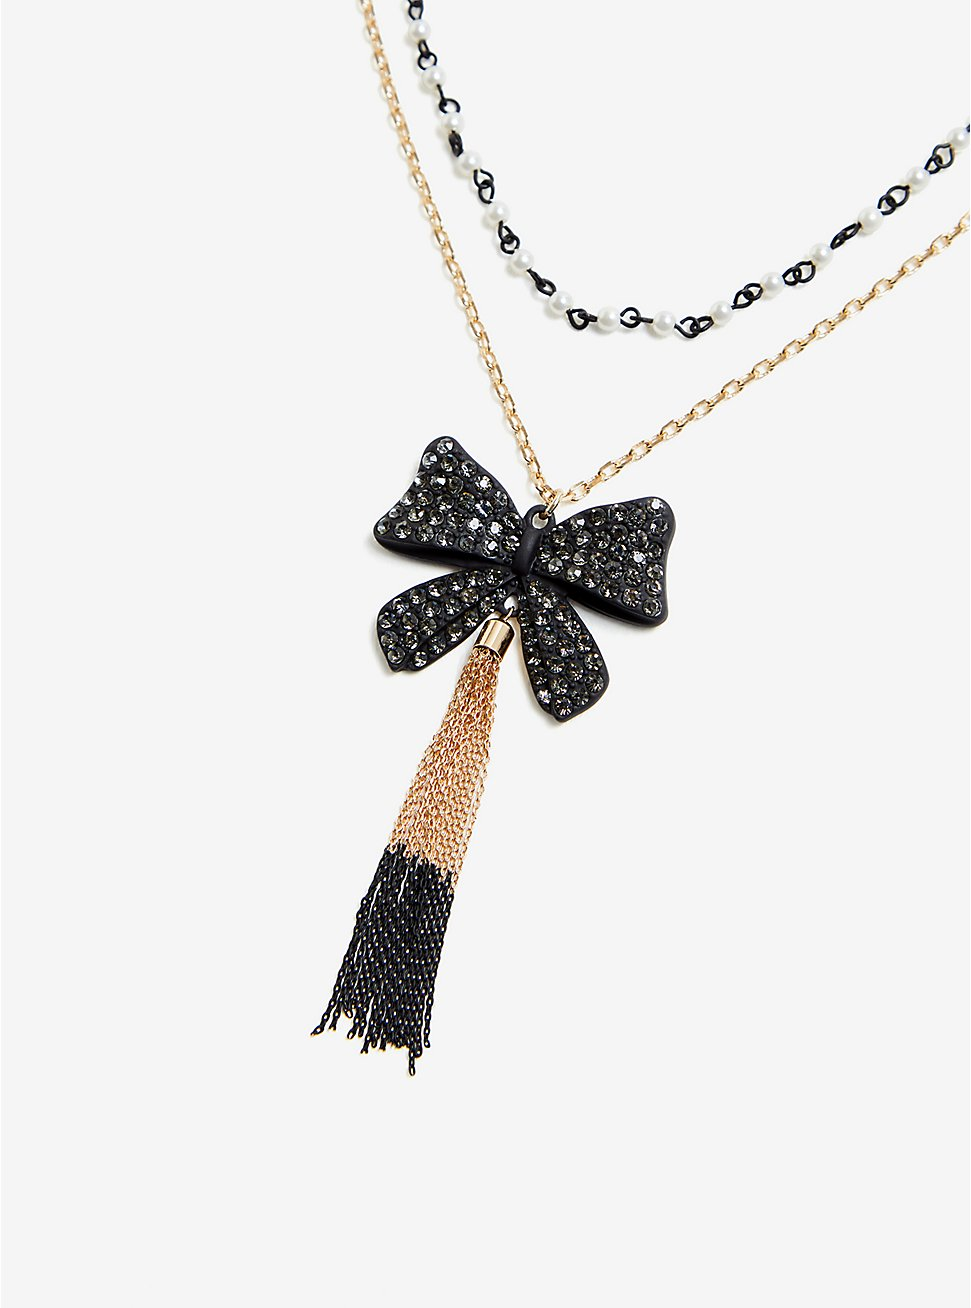 Plus Size Betsey Johnson Bow Tassel Necklace, , hi-res